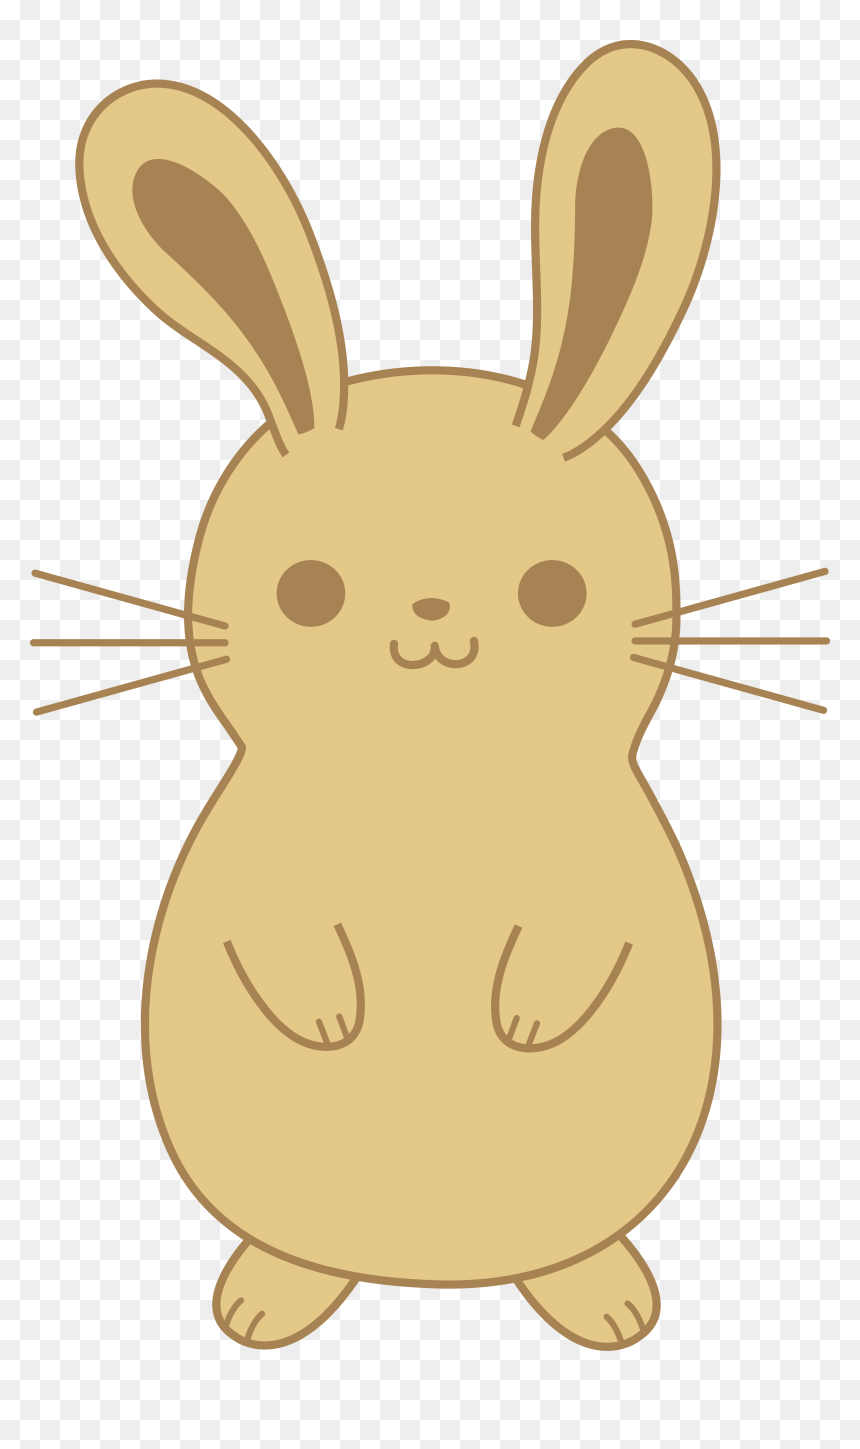 Cute Brown Bunny Rabbit Simple Easter Bunny Cartoon Hd Png Download Vhv